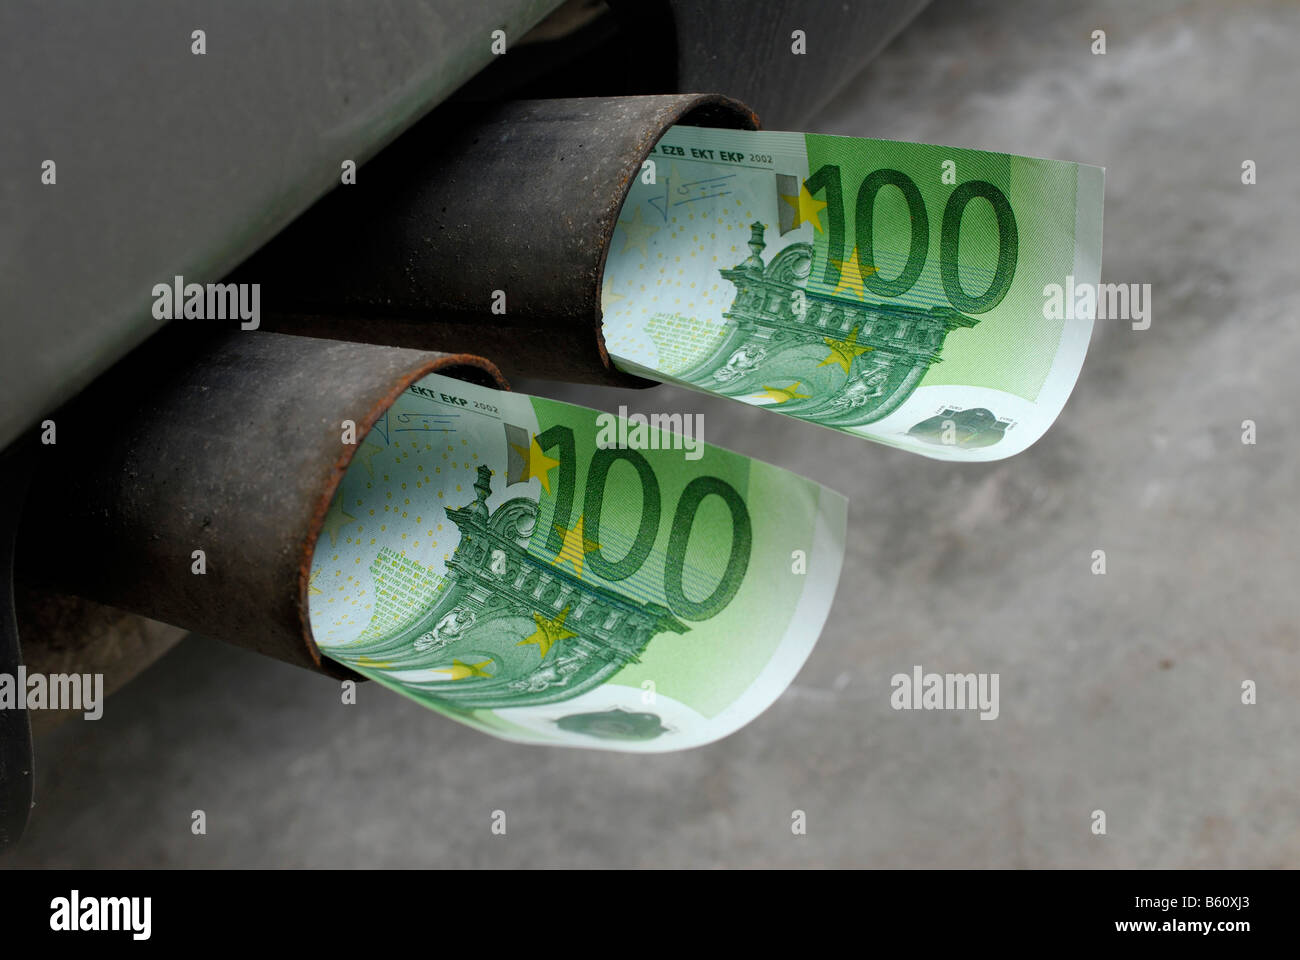 Cash Notes In A Car S Exhaust Pipe Symbolic Image For Increased Car